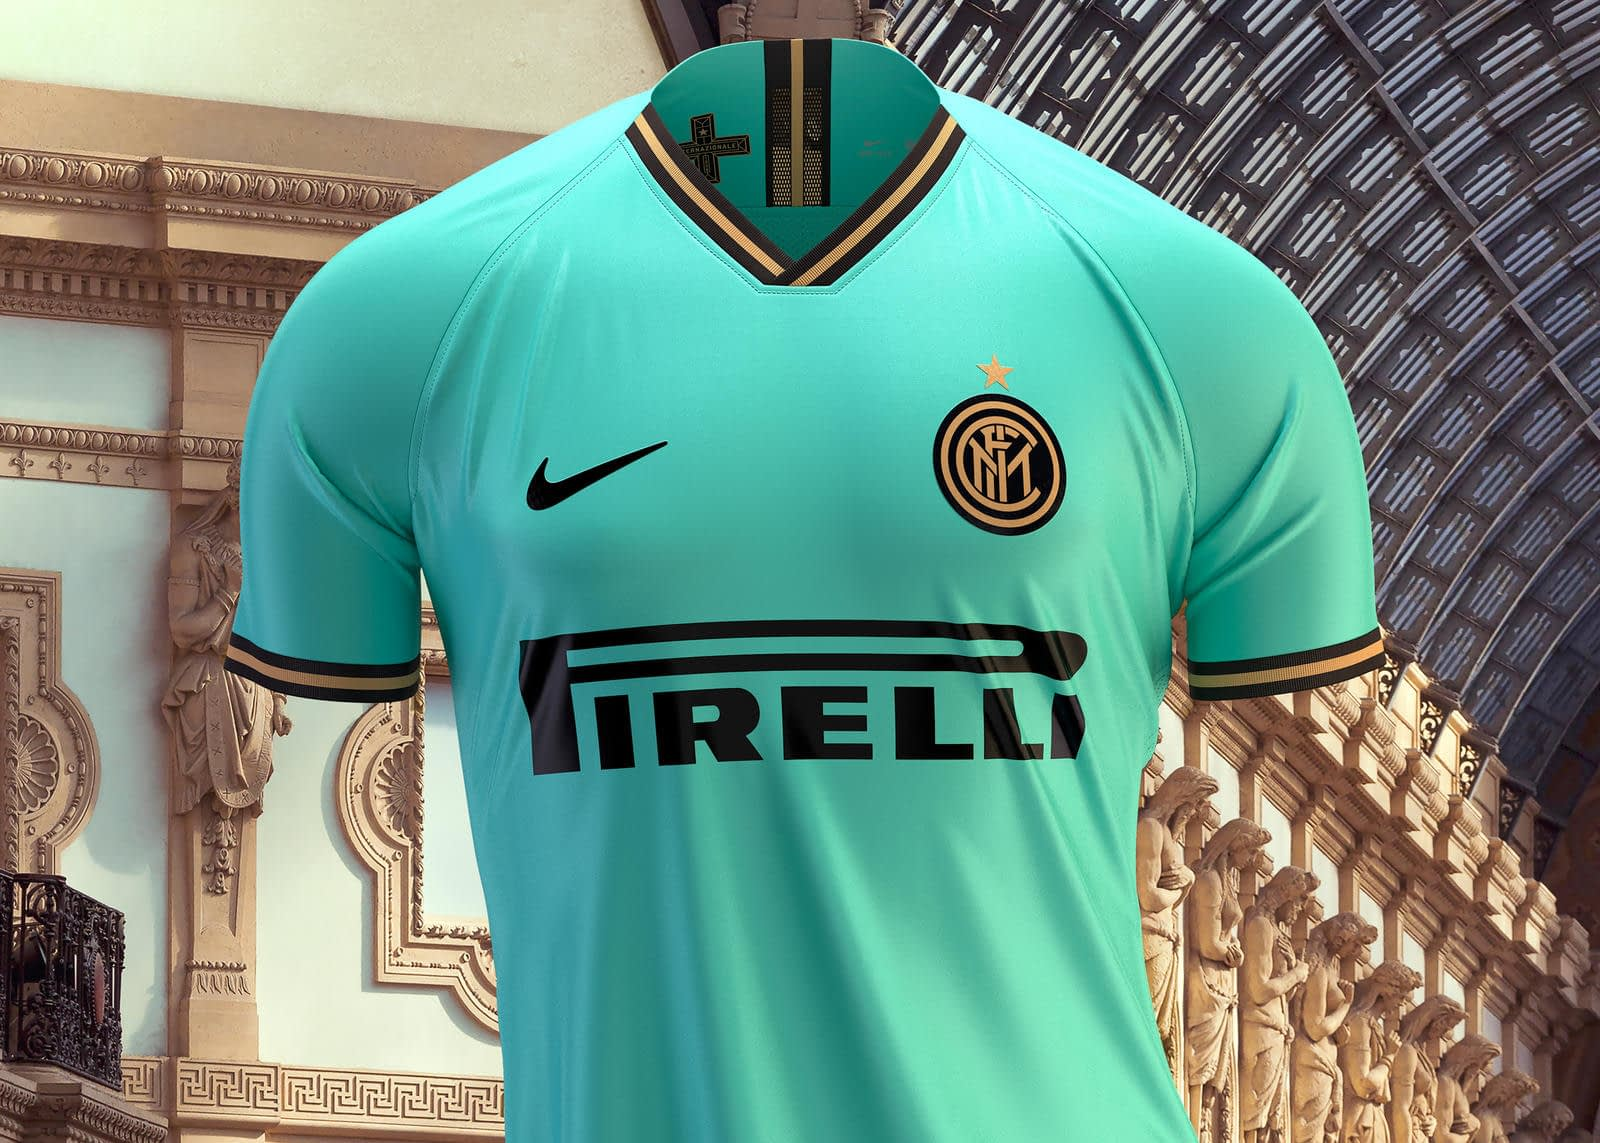 The Best 2019/20 Designed Football Kits, as rated by a Design Agency.